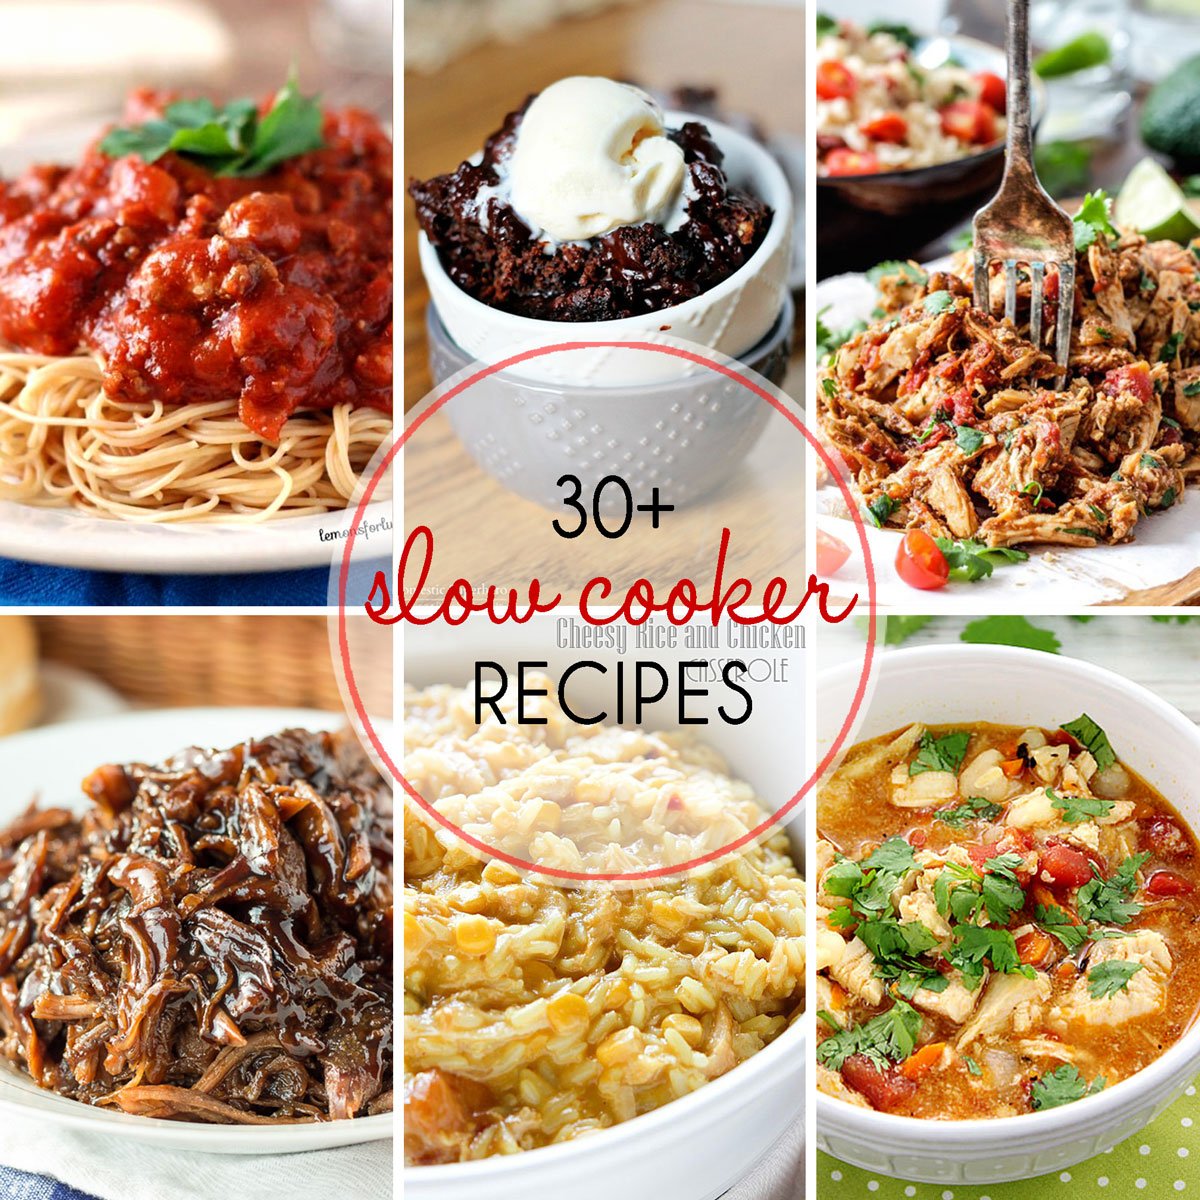 30+ Slow Cooker Recipes